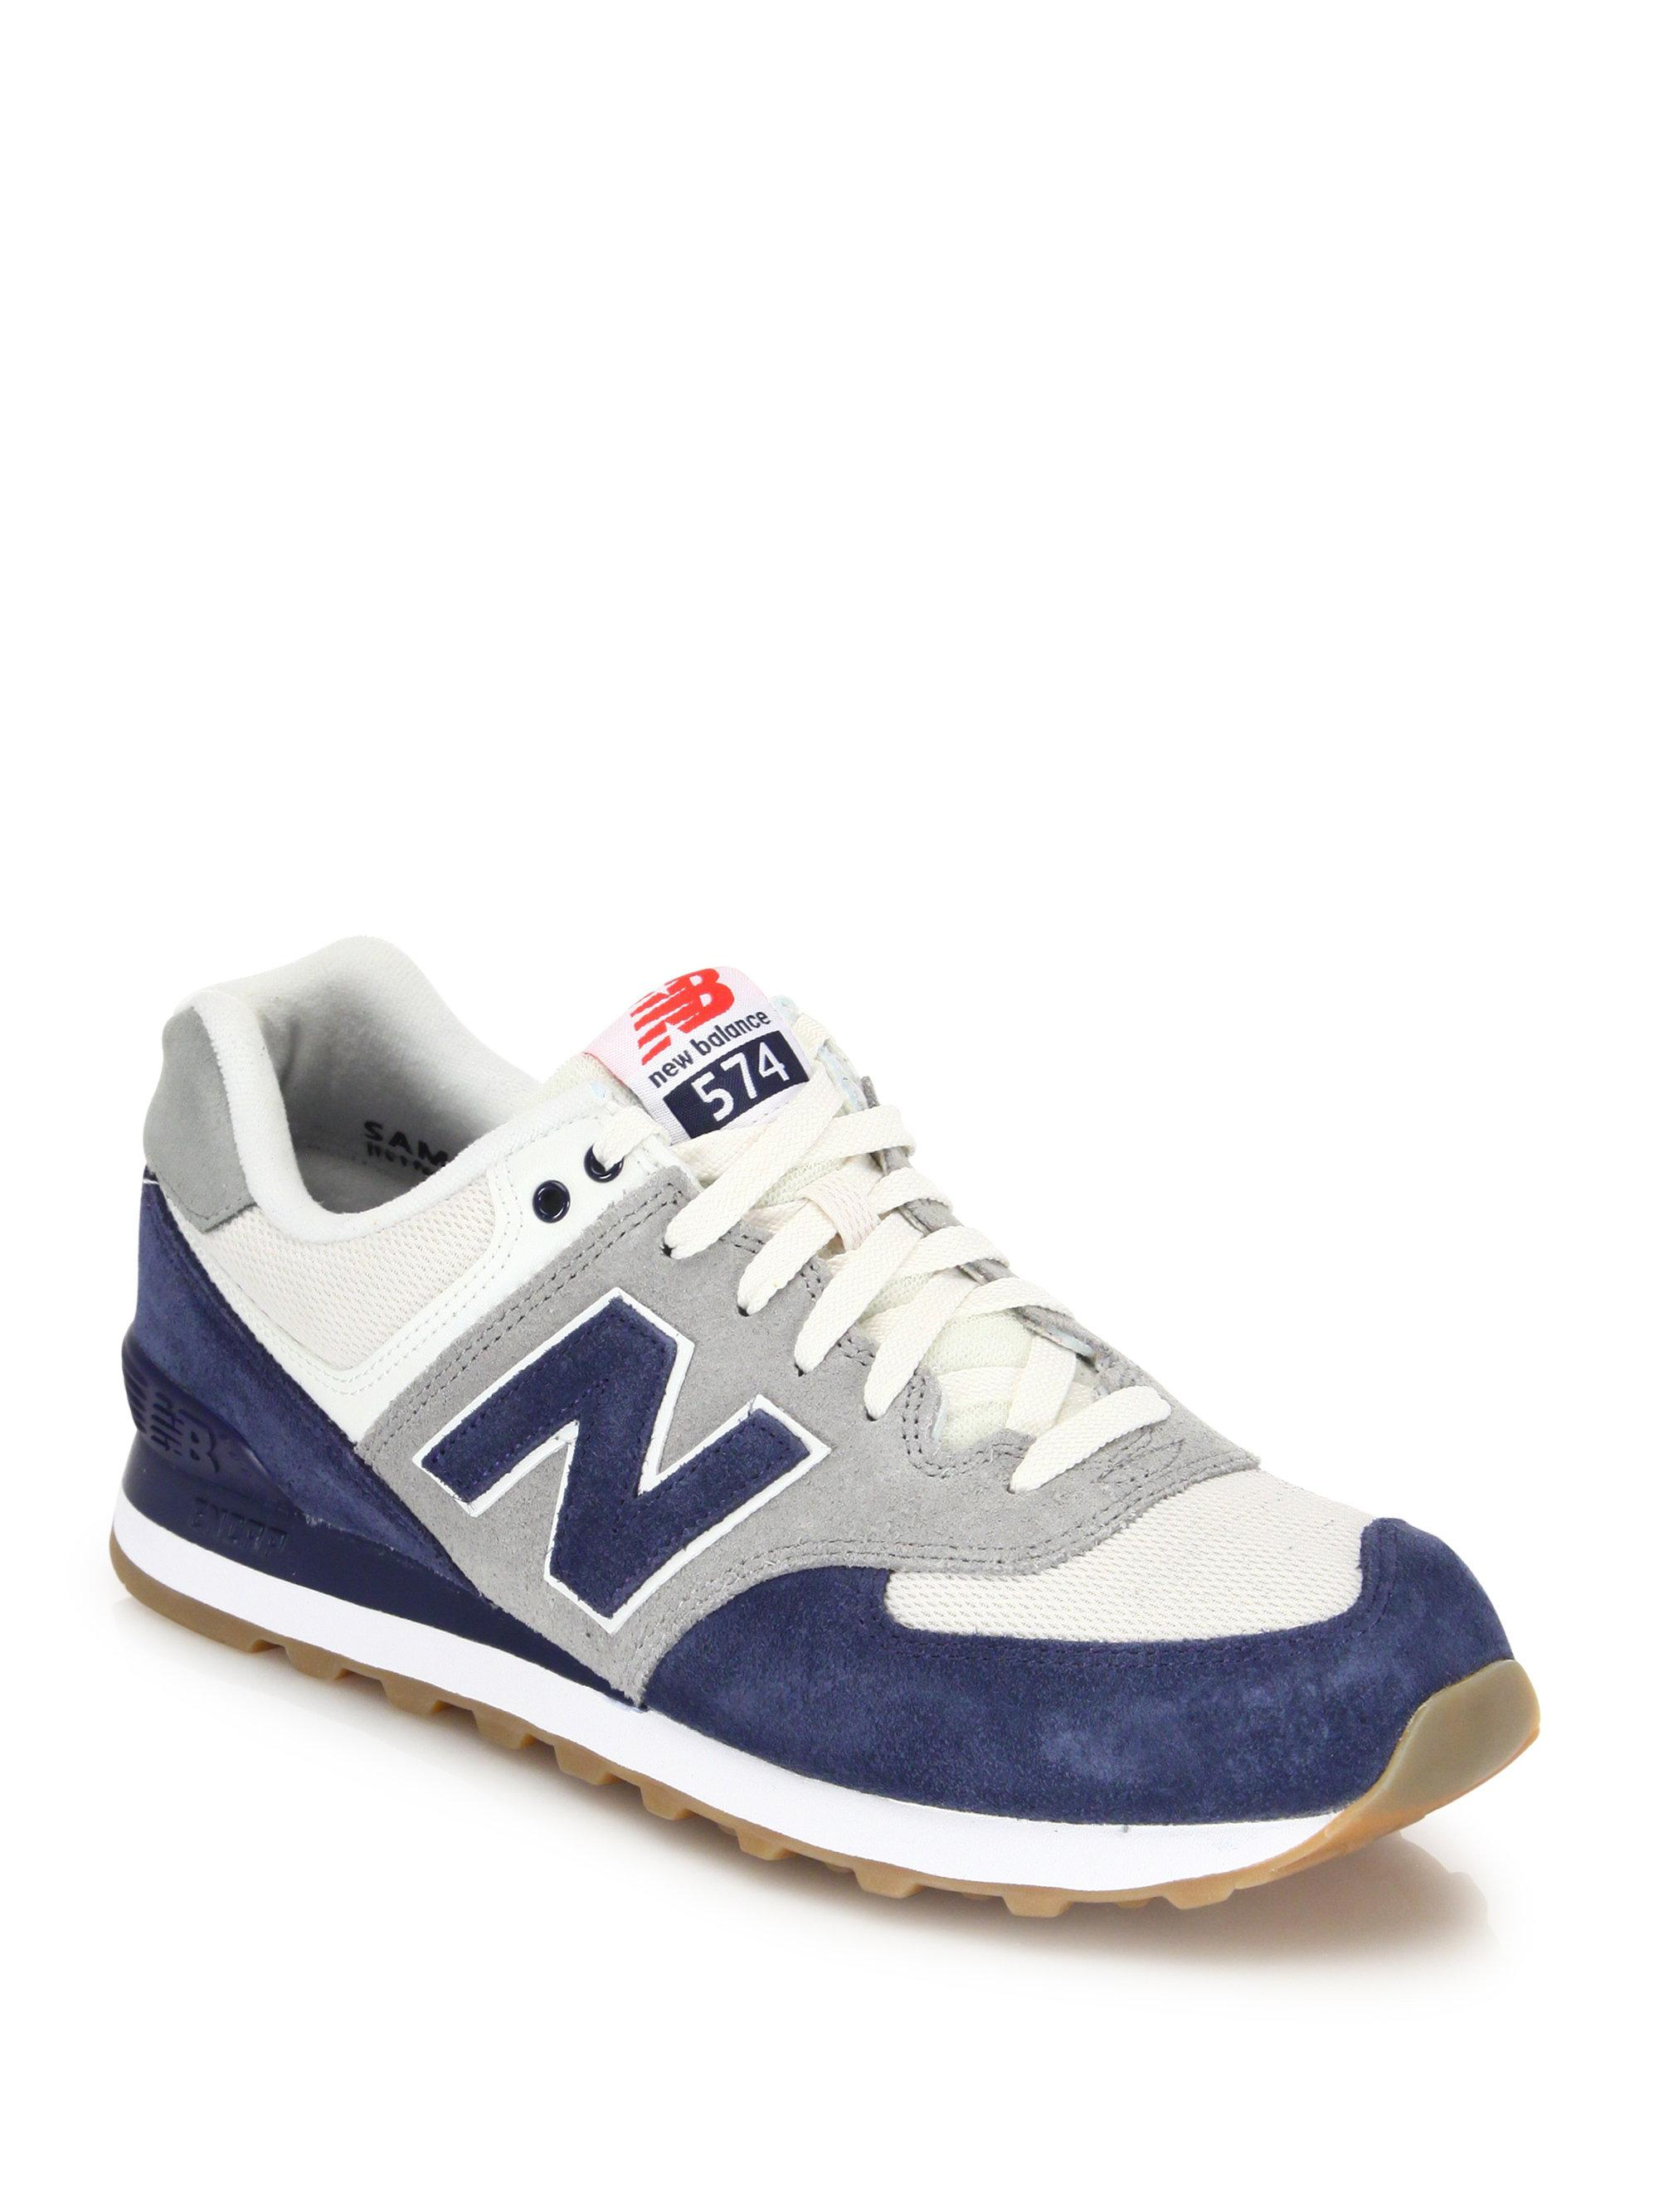 New Balance 574 mesh panel sneakers NEV6qPE29g